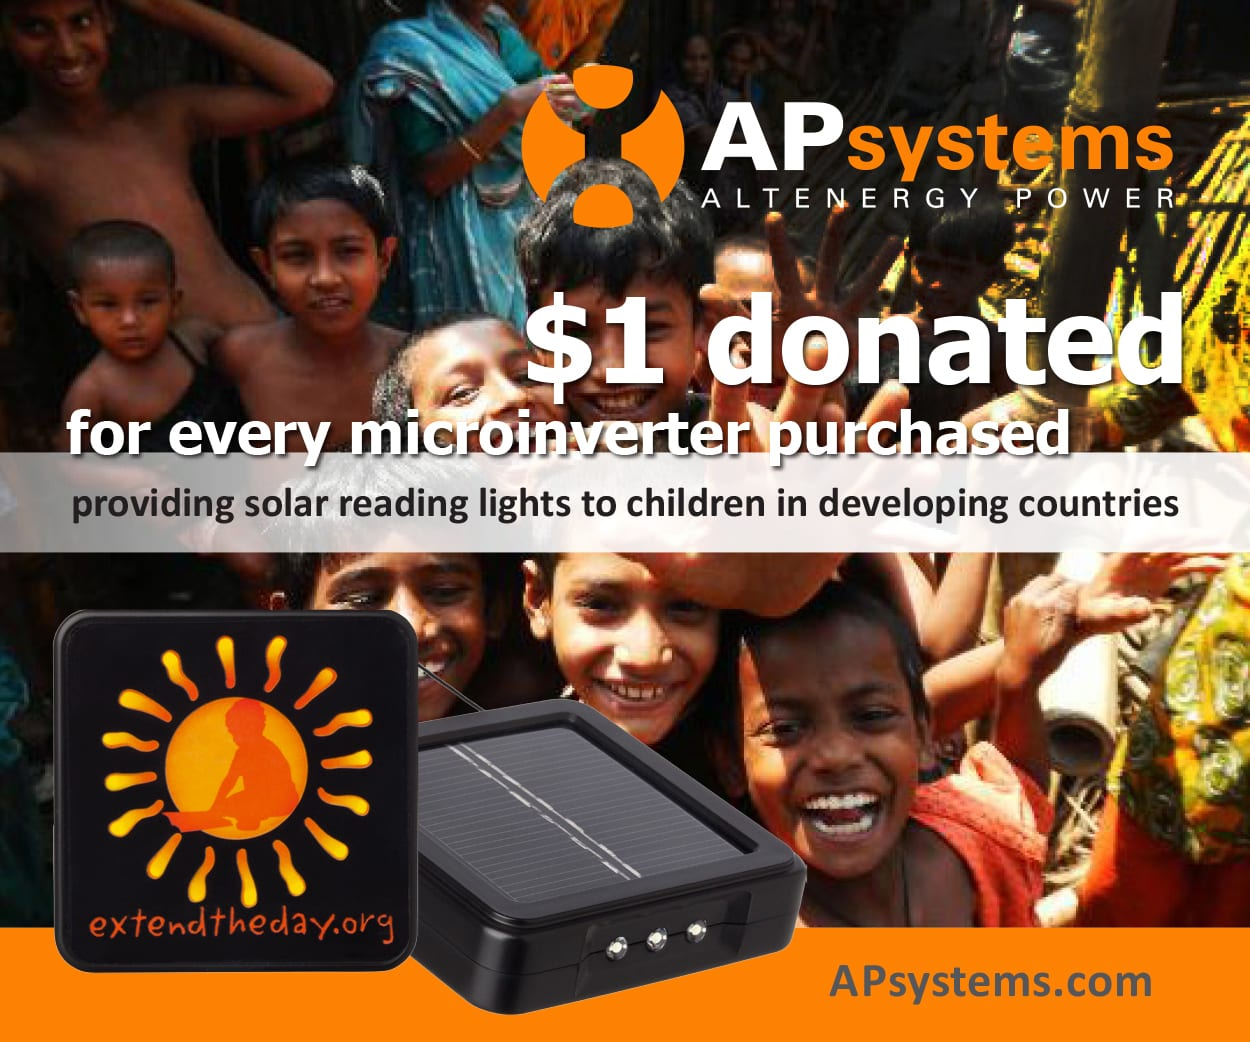 APsystems-SolarPower-Online-ad-300x250 EXTEND 2017